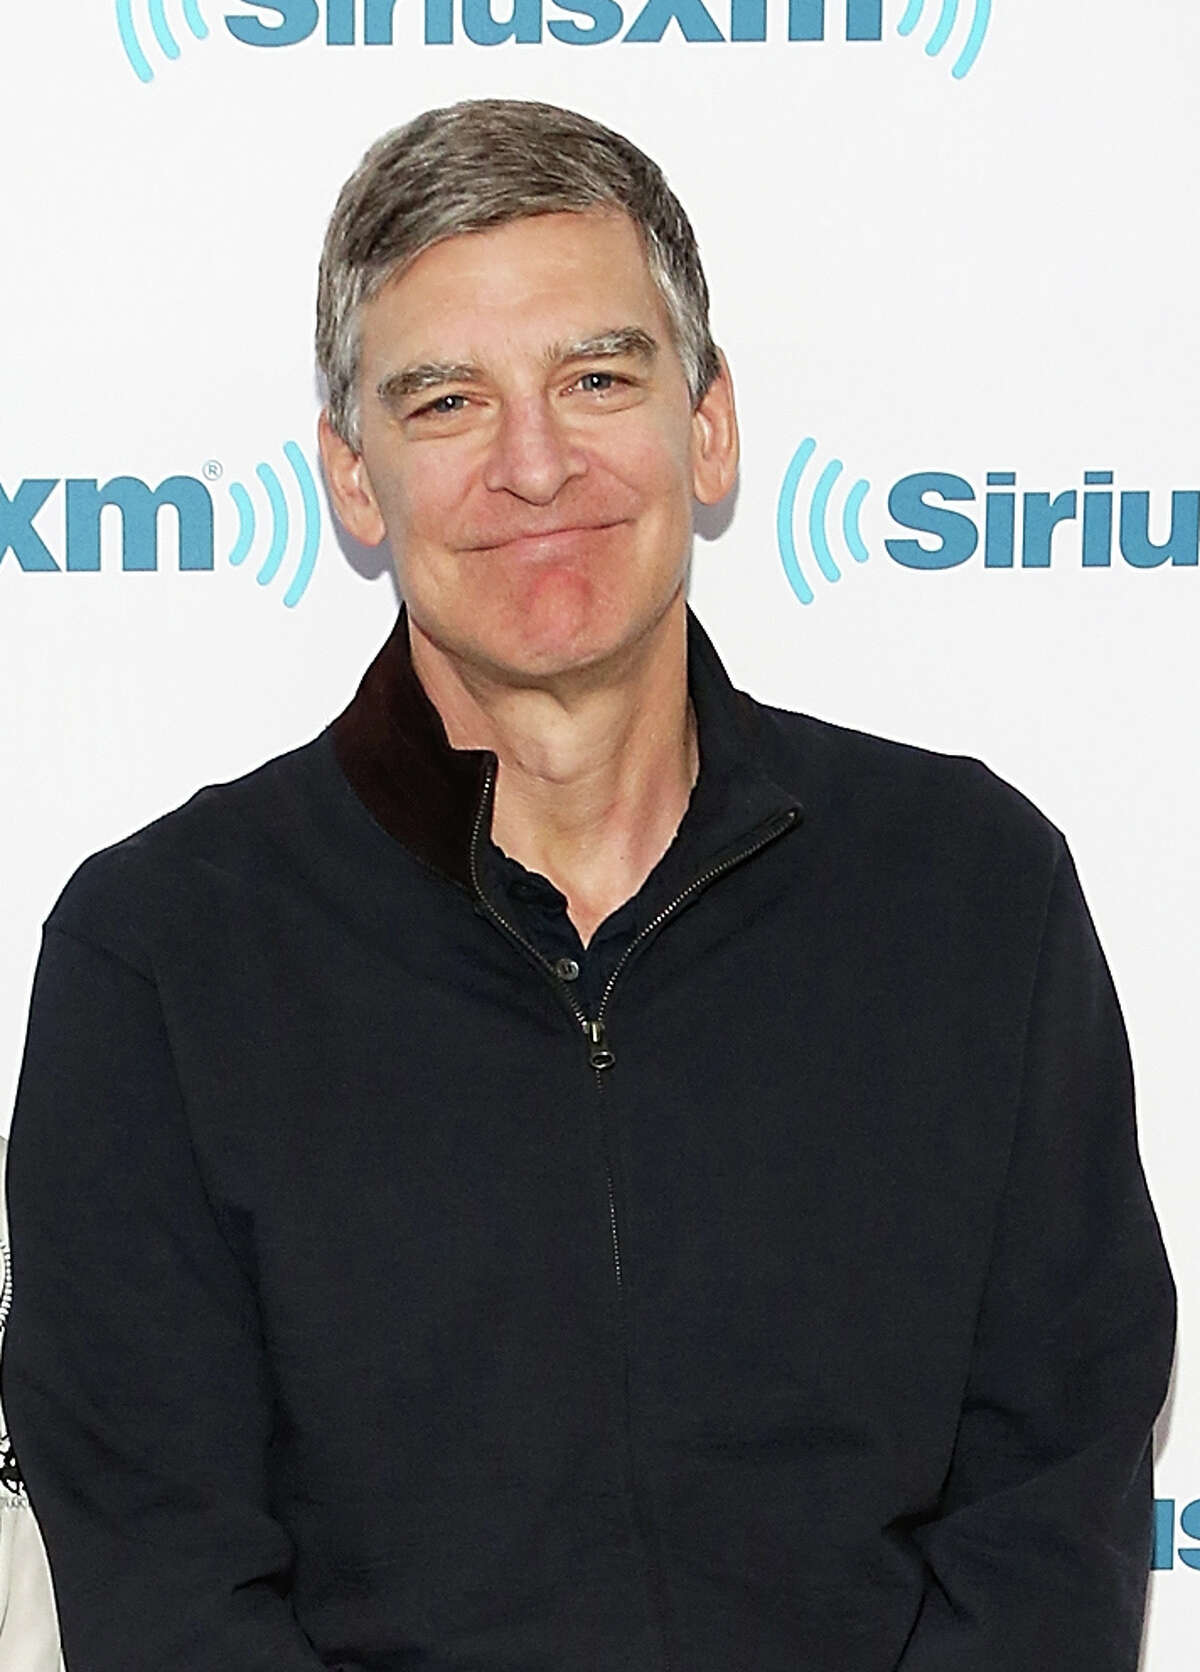 NEW YORK, NY - MAY 01: Writers and producers Mike Reiss (L) and Jeff Martin visit SiriusXM Studios on May 1, 2015 in New York City. (Photo by Monica Schipper/Getty Images)